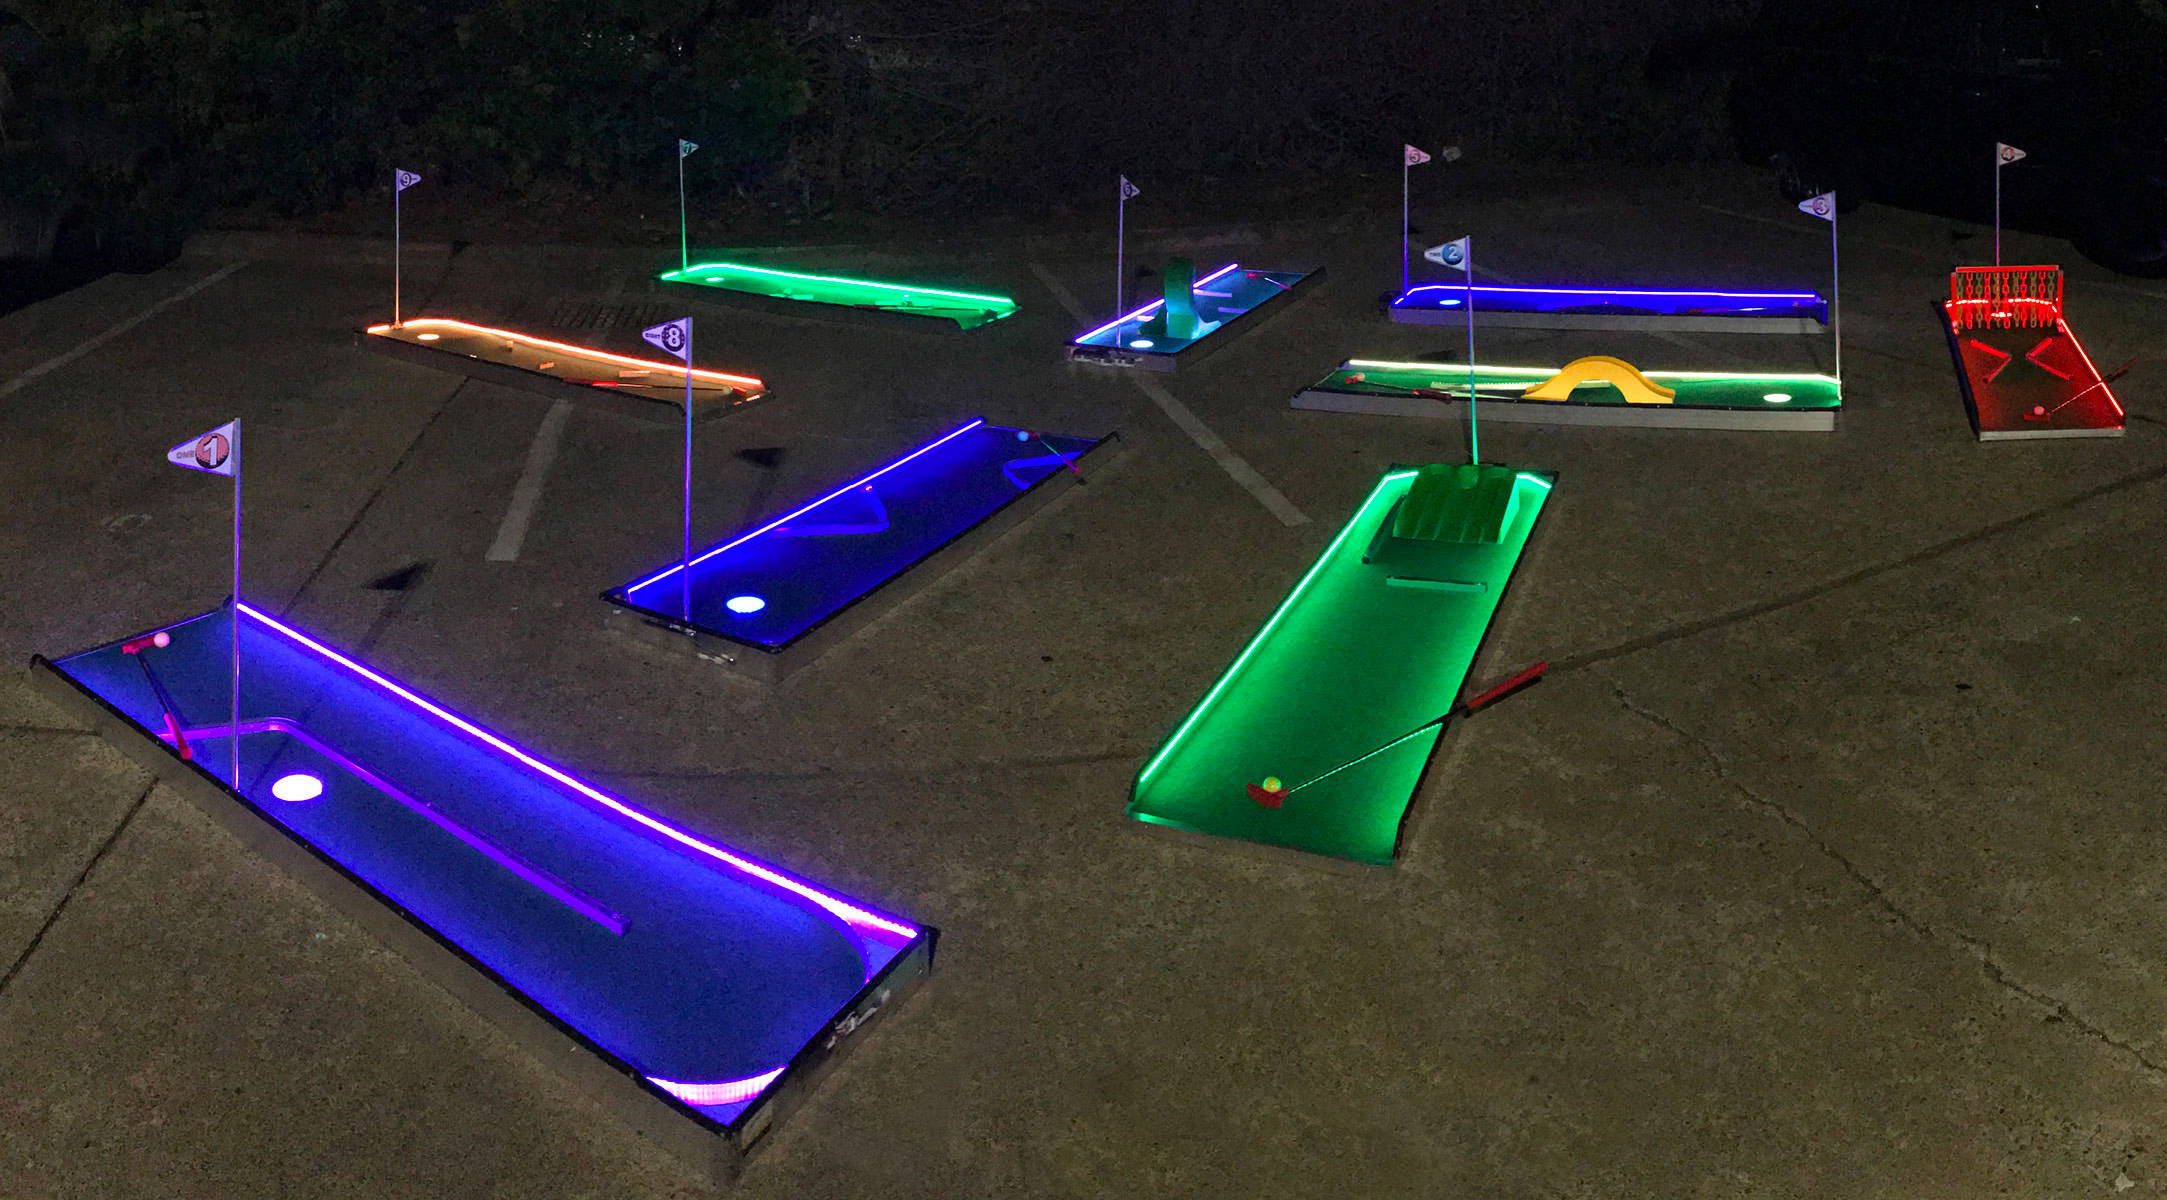 LED Mini golf set up for a demonstration